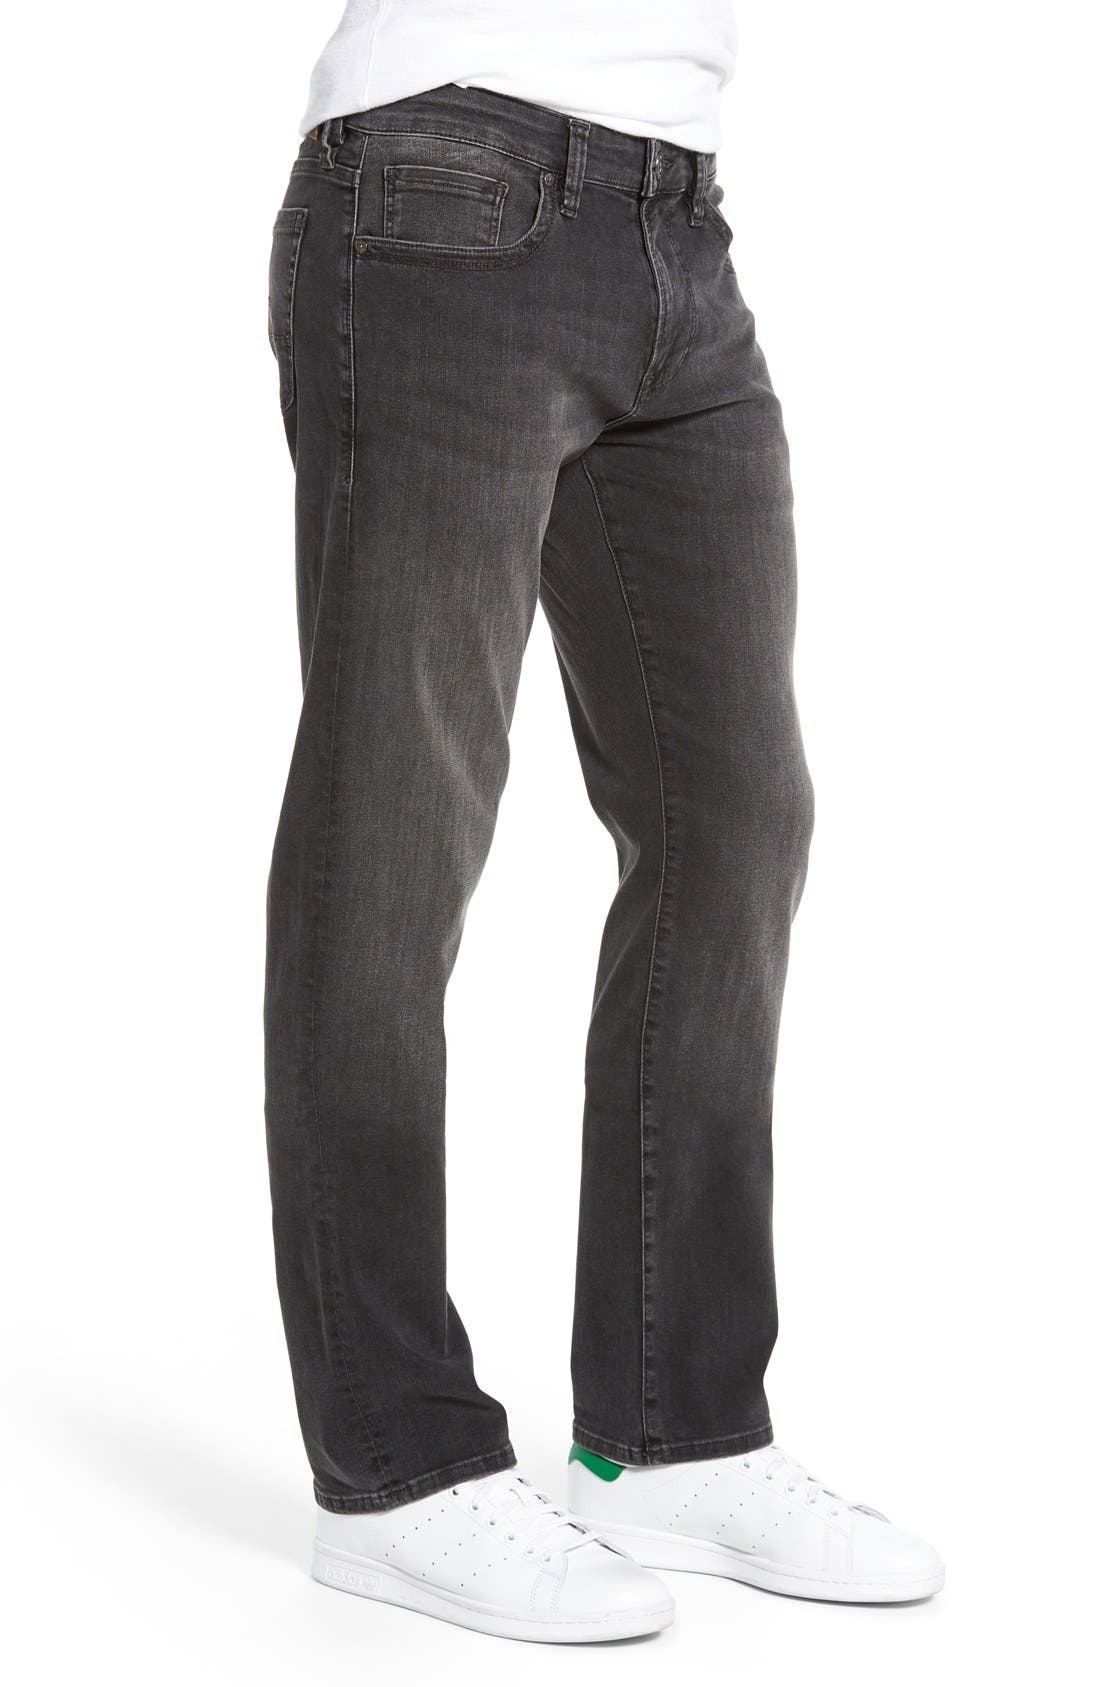 'Courage' Straight Leg Jeans,                             Alternate thumbnail 3, color,                             Courage Coal Soft